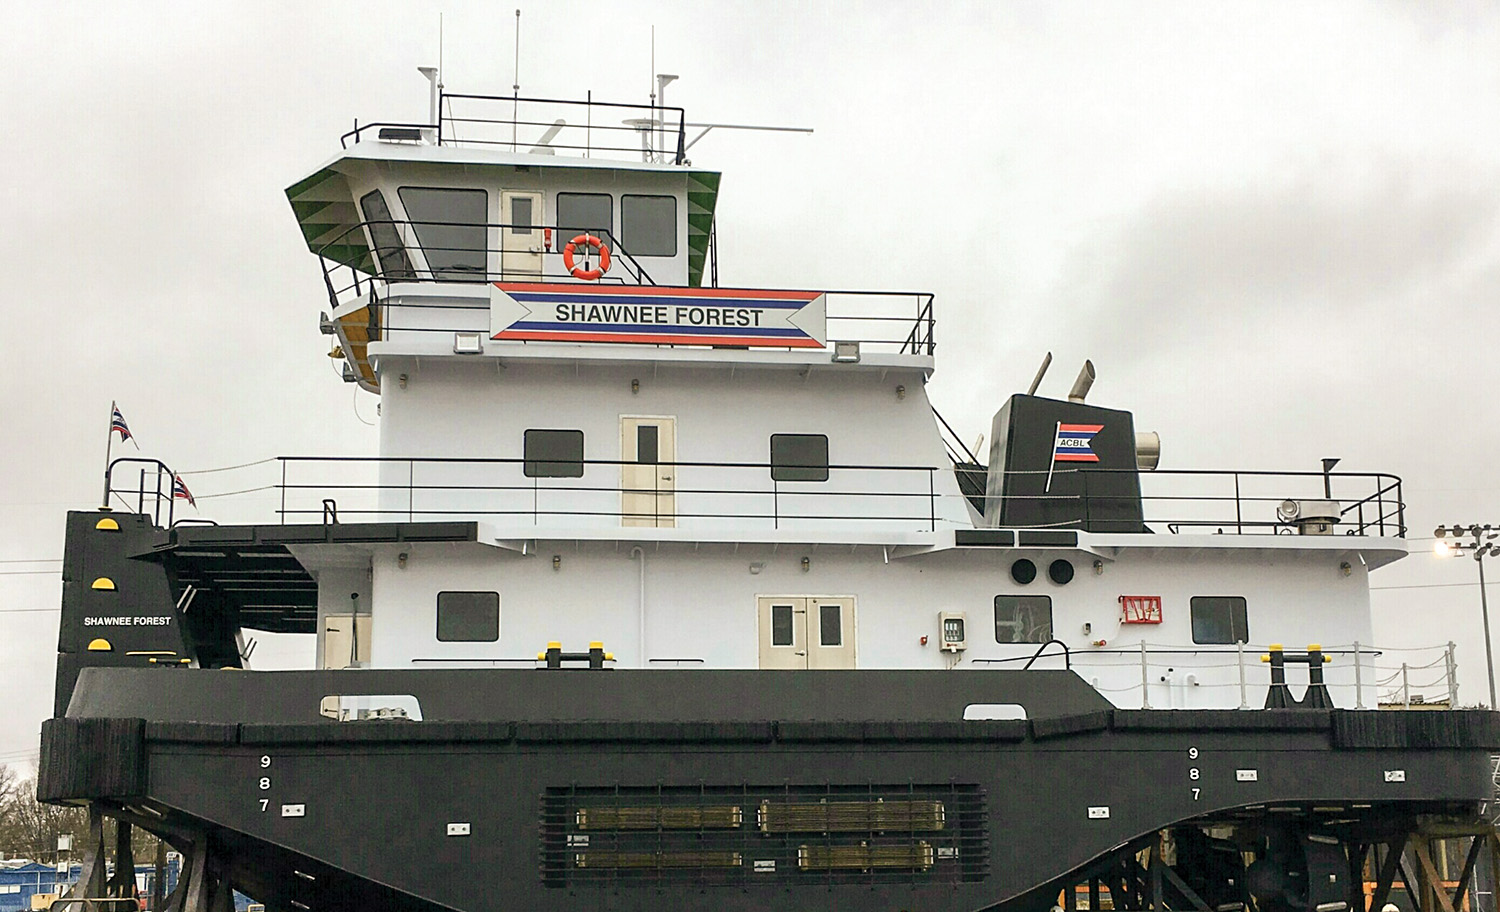 The 2,000 hp. towboat is powered by Caterpillar diesels with ZF Marine azimuth-drive units.